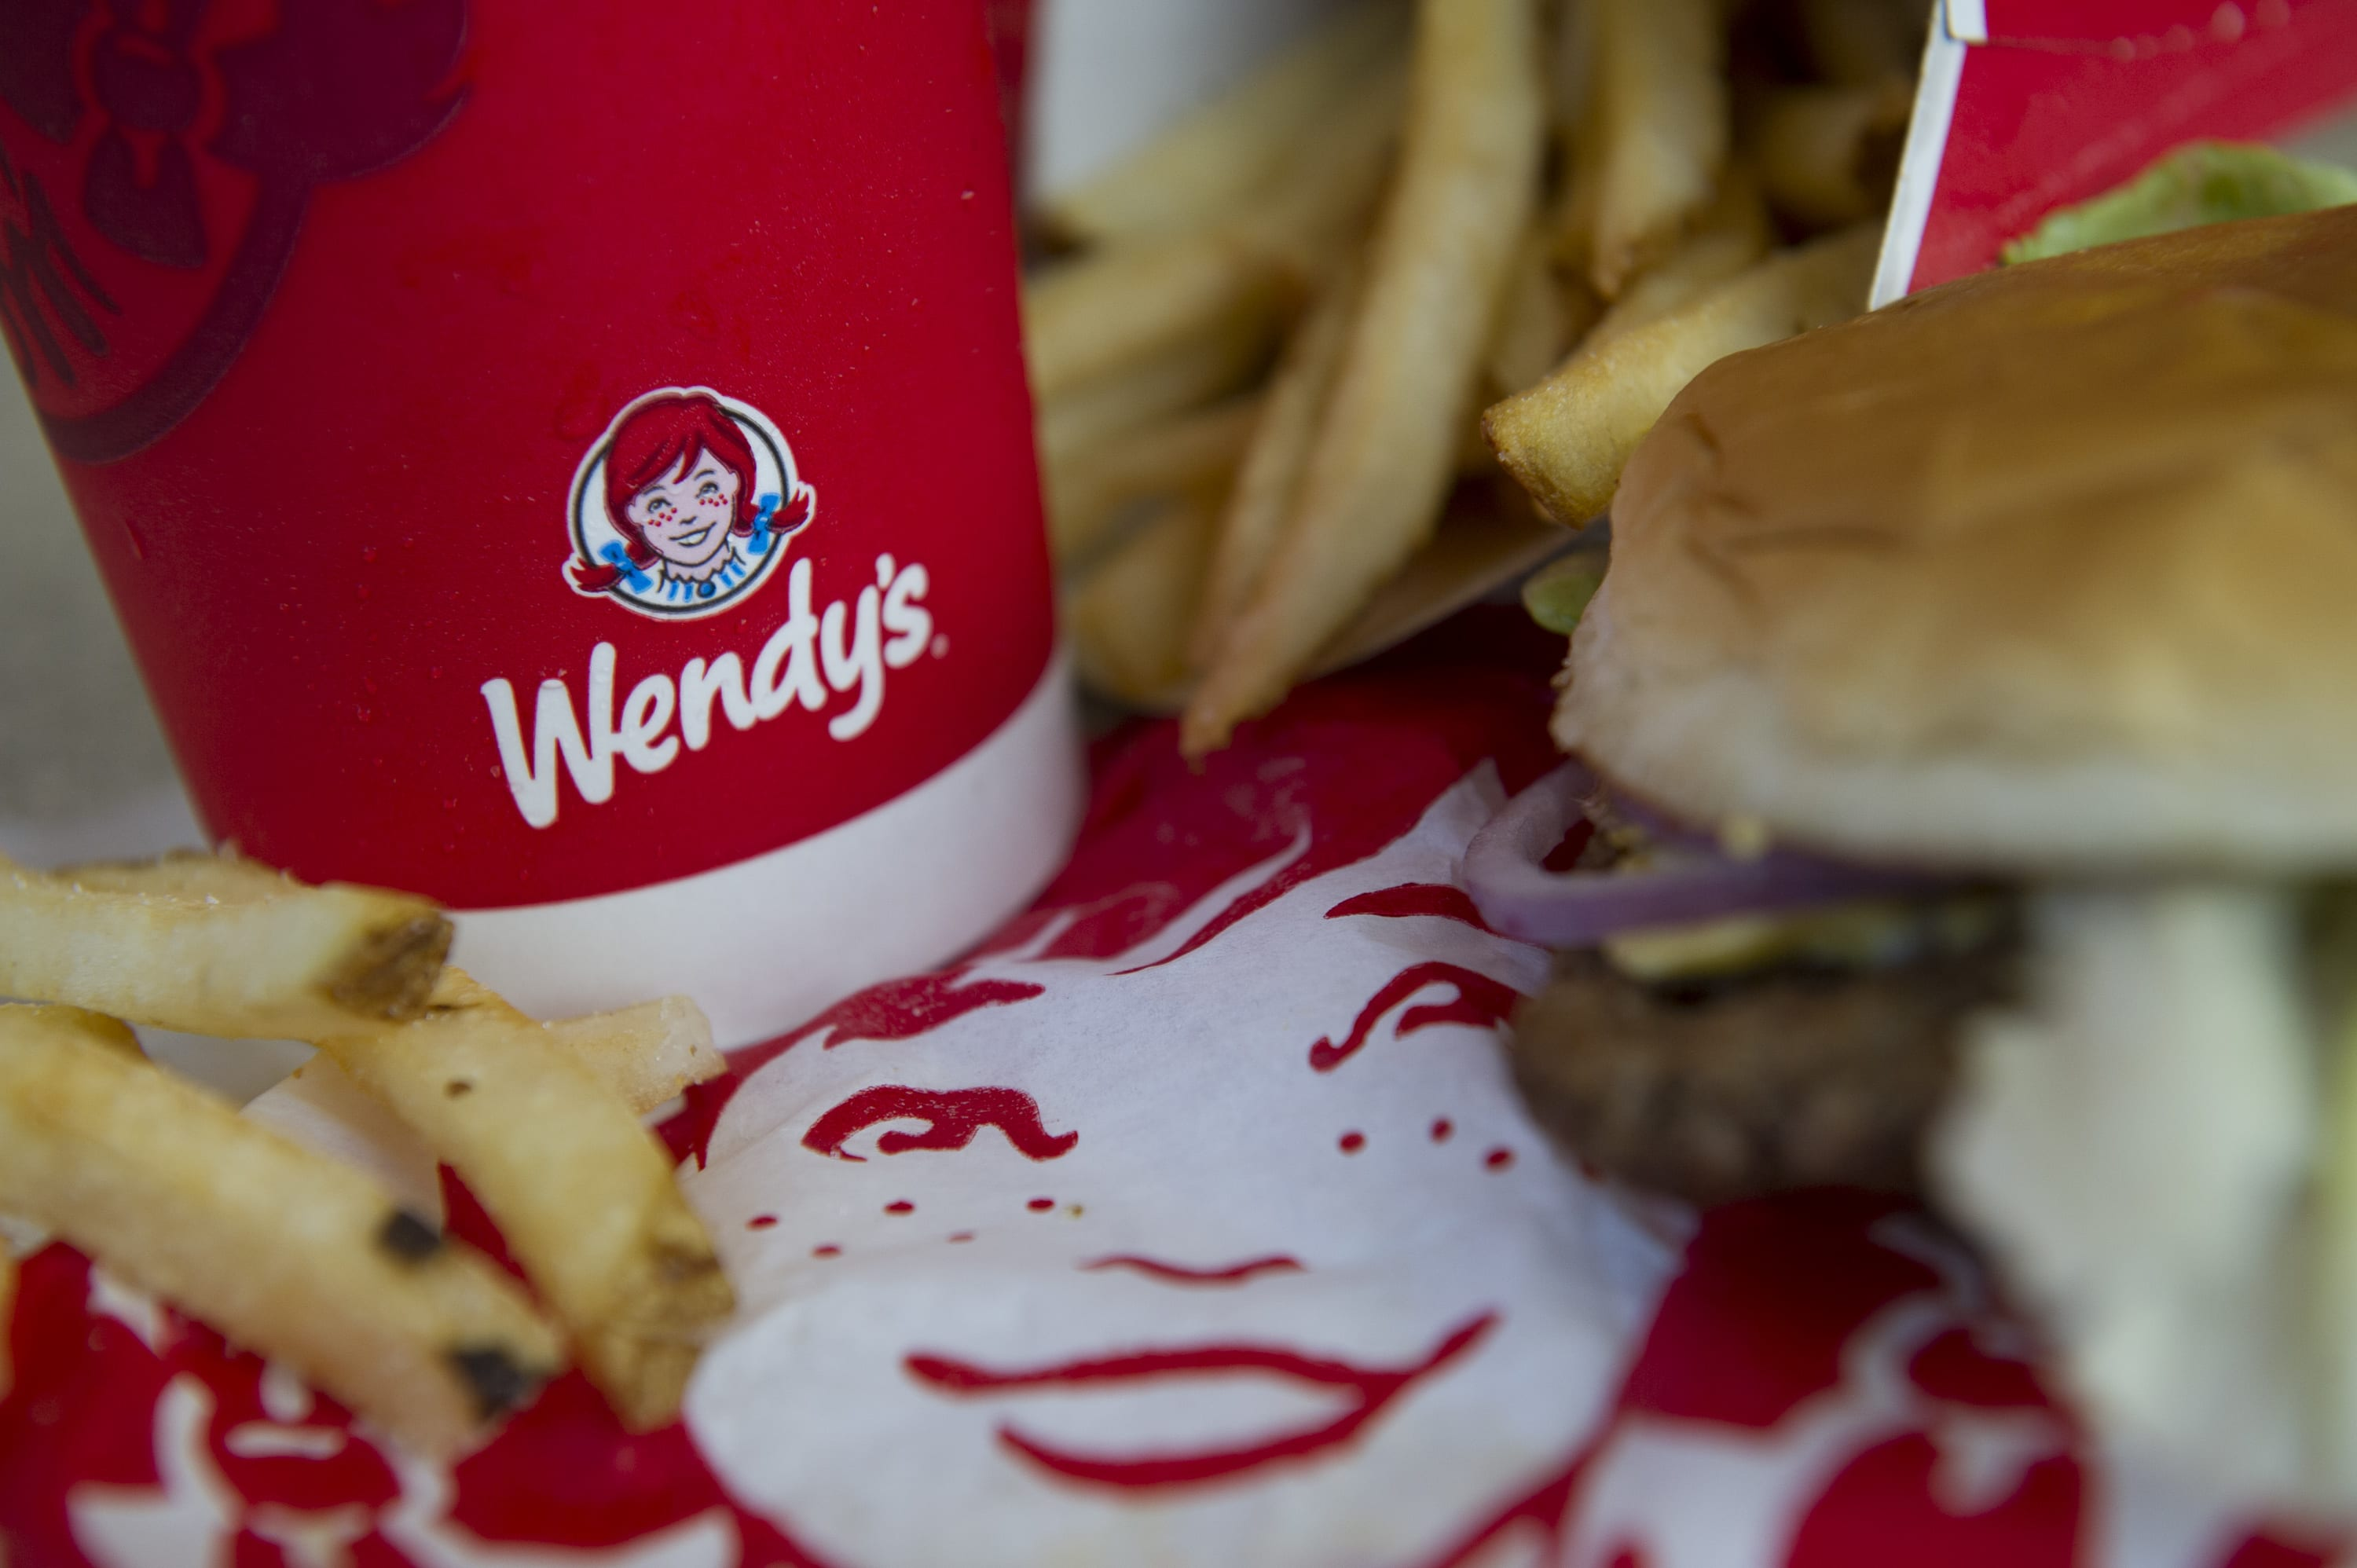 Stocks making the biggest moves midday: Wendy's, Starbucks, Maxar